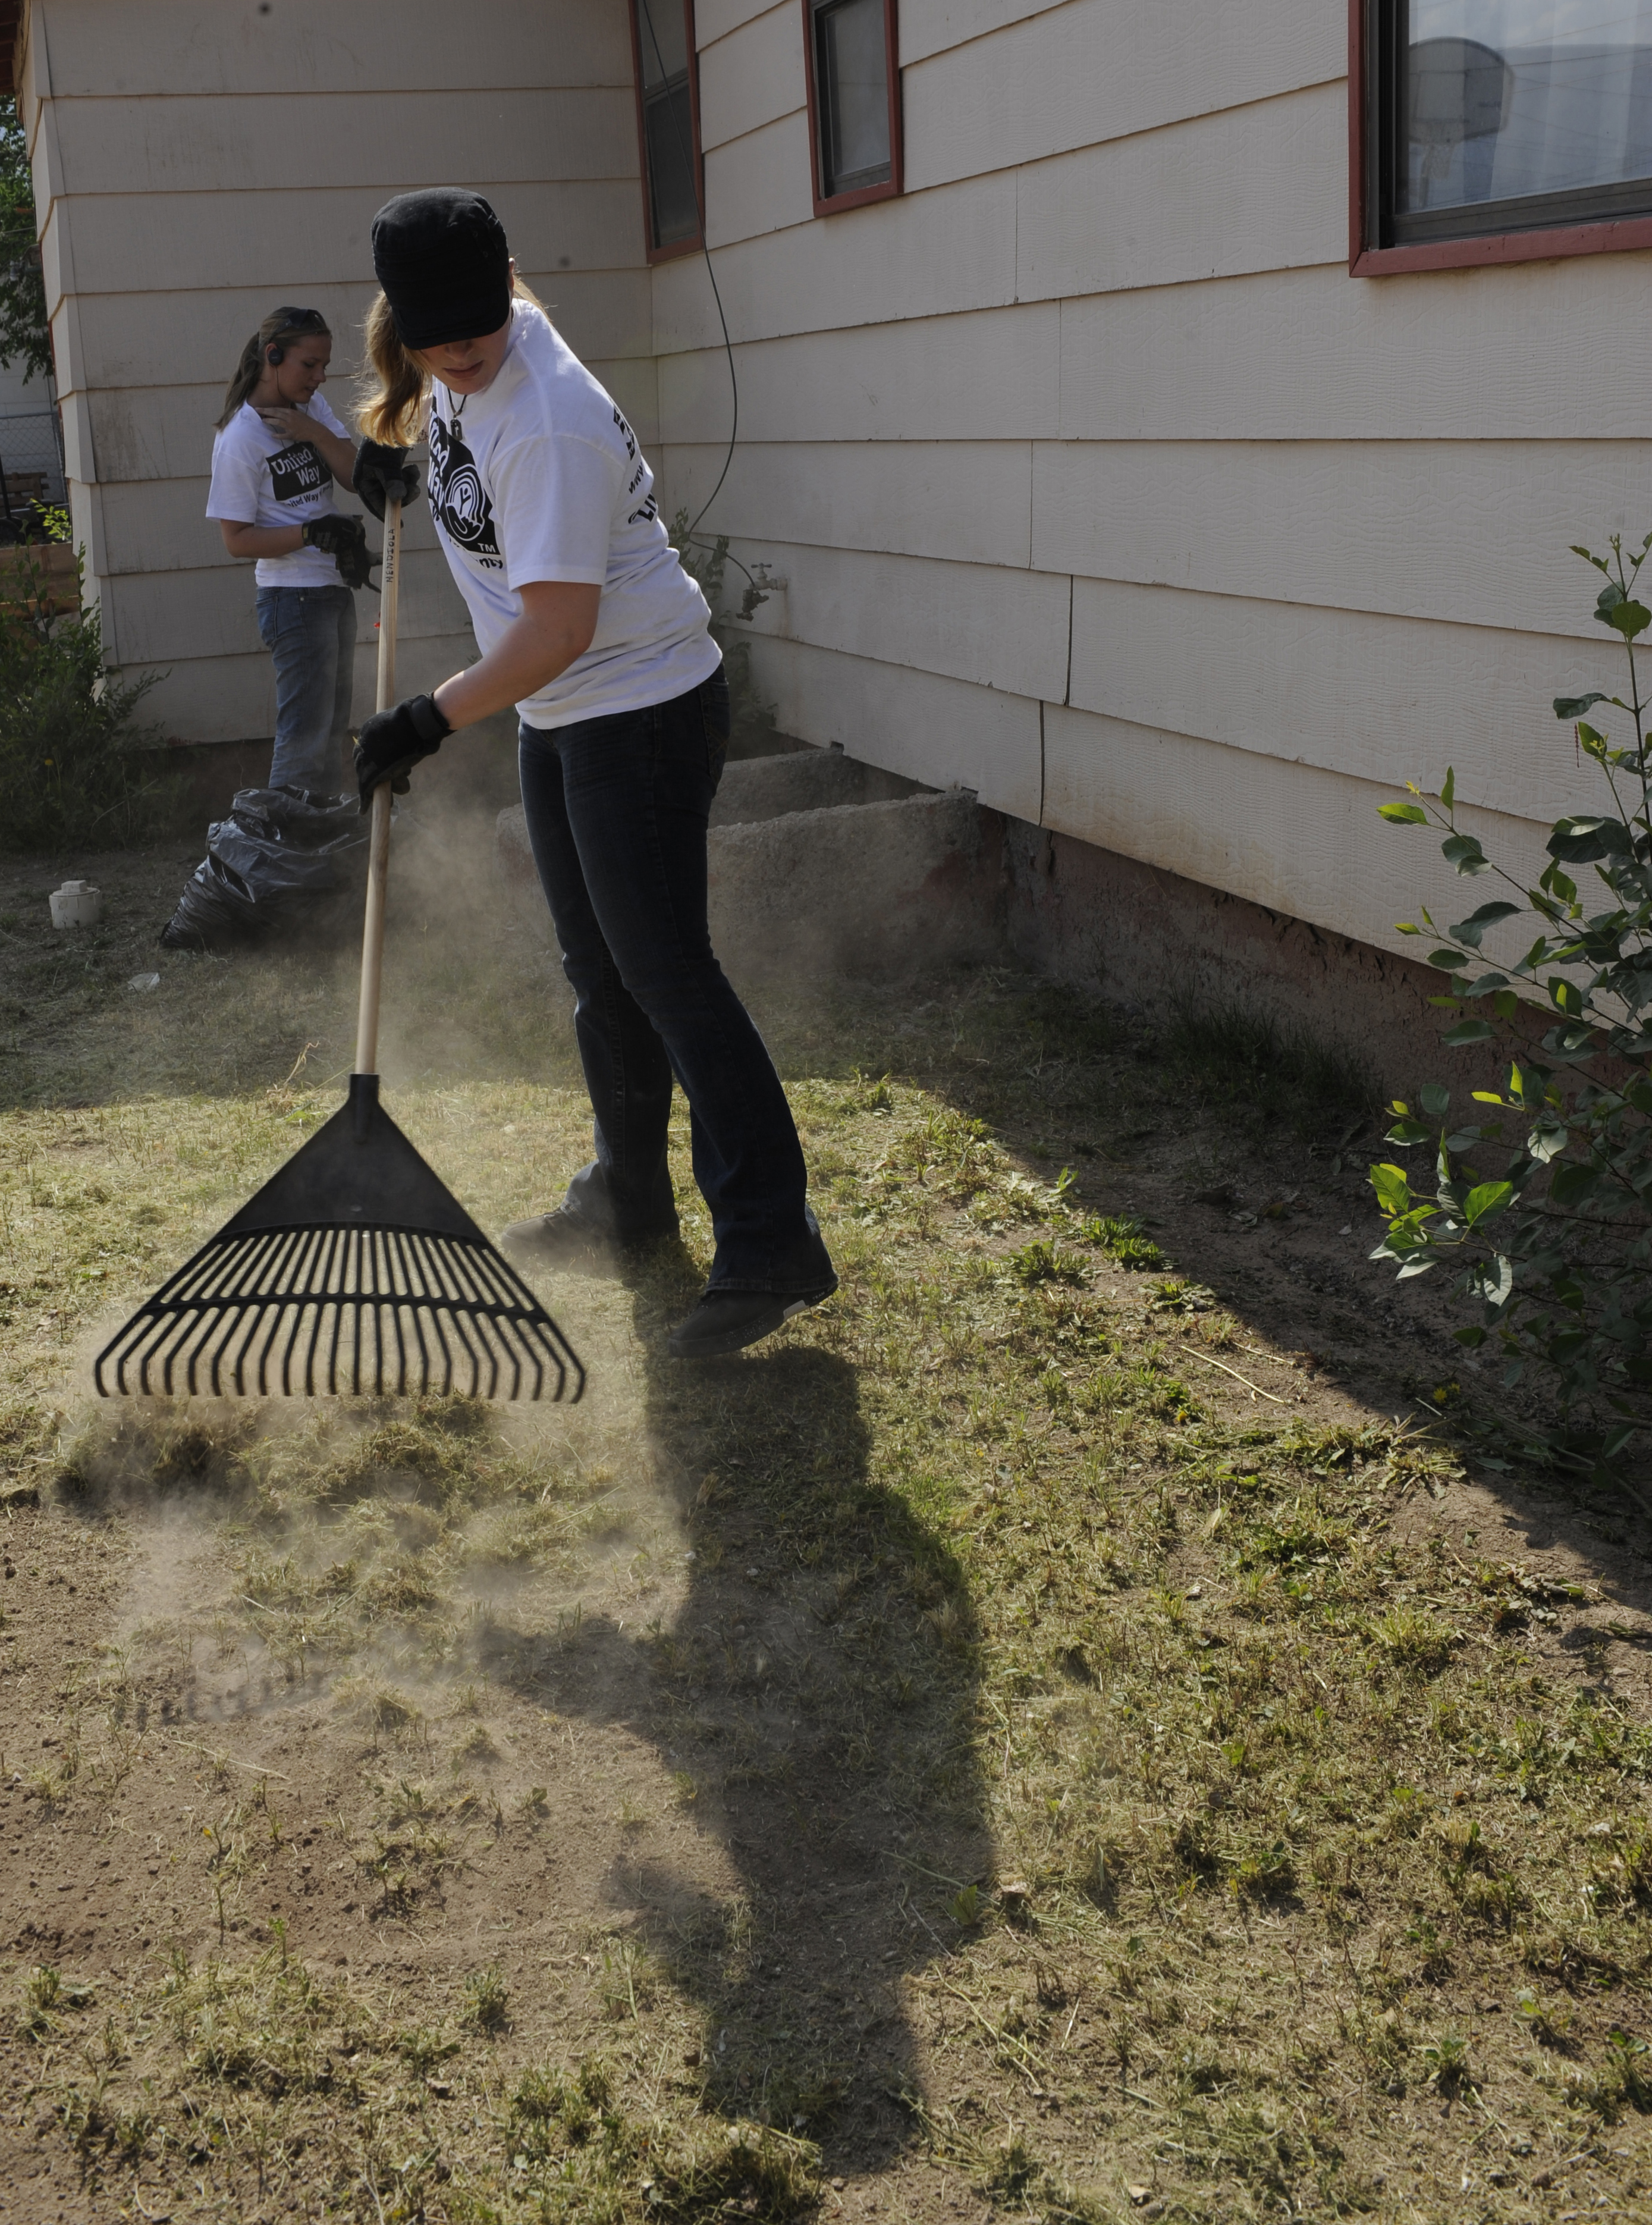 keep home and surroundings clean